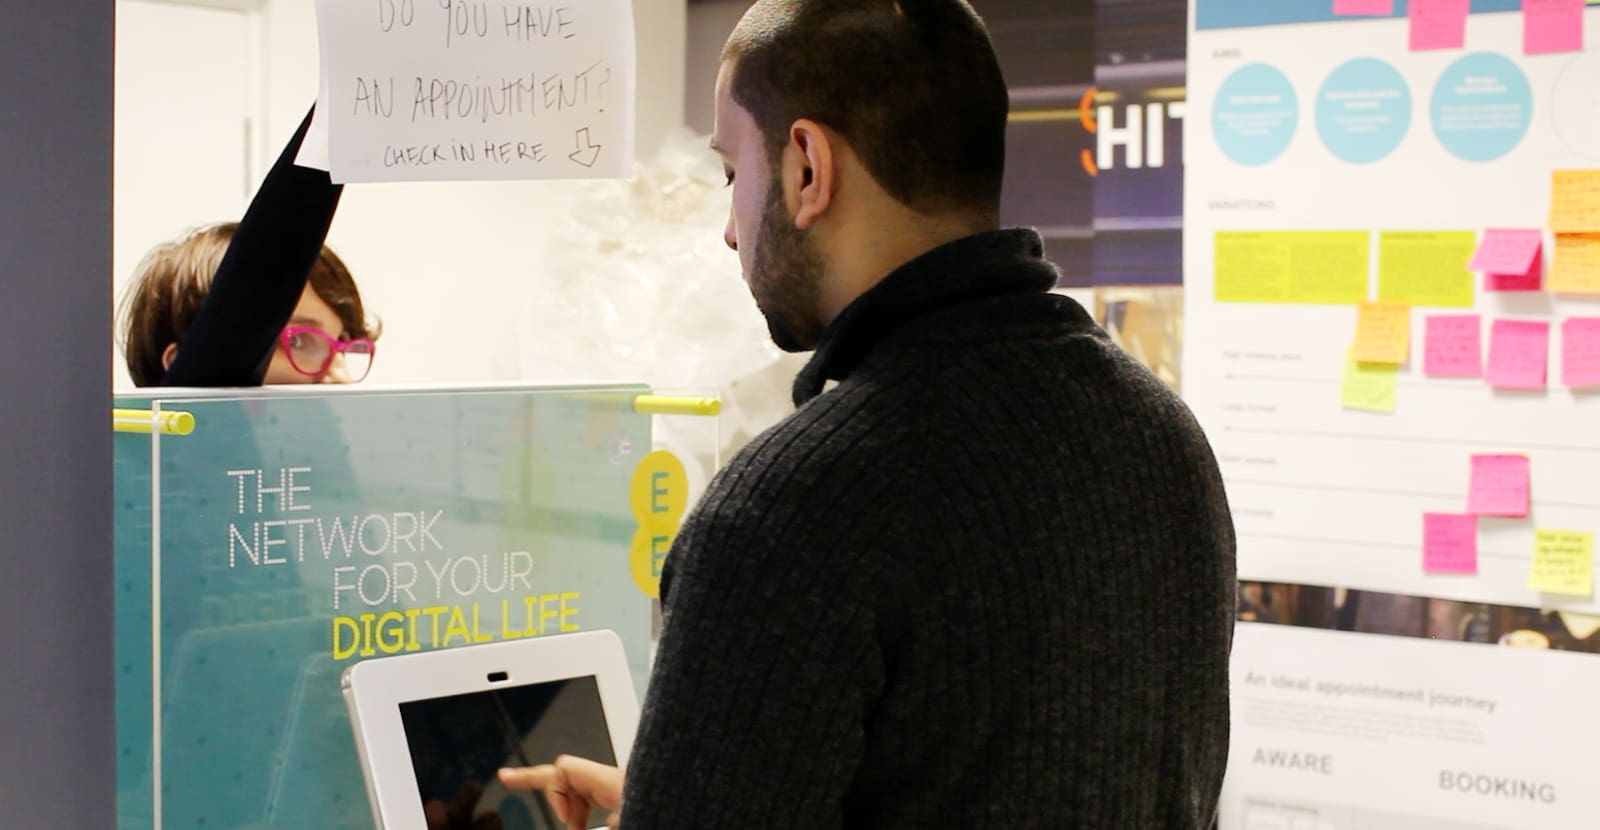 ee telecoms digital retail experience by engine